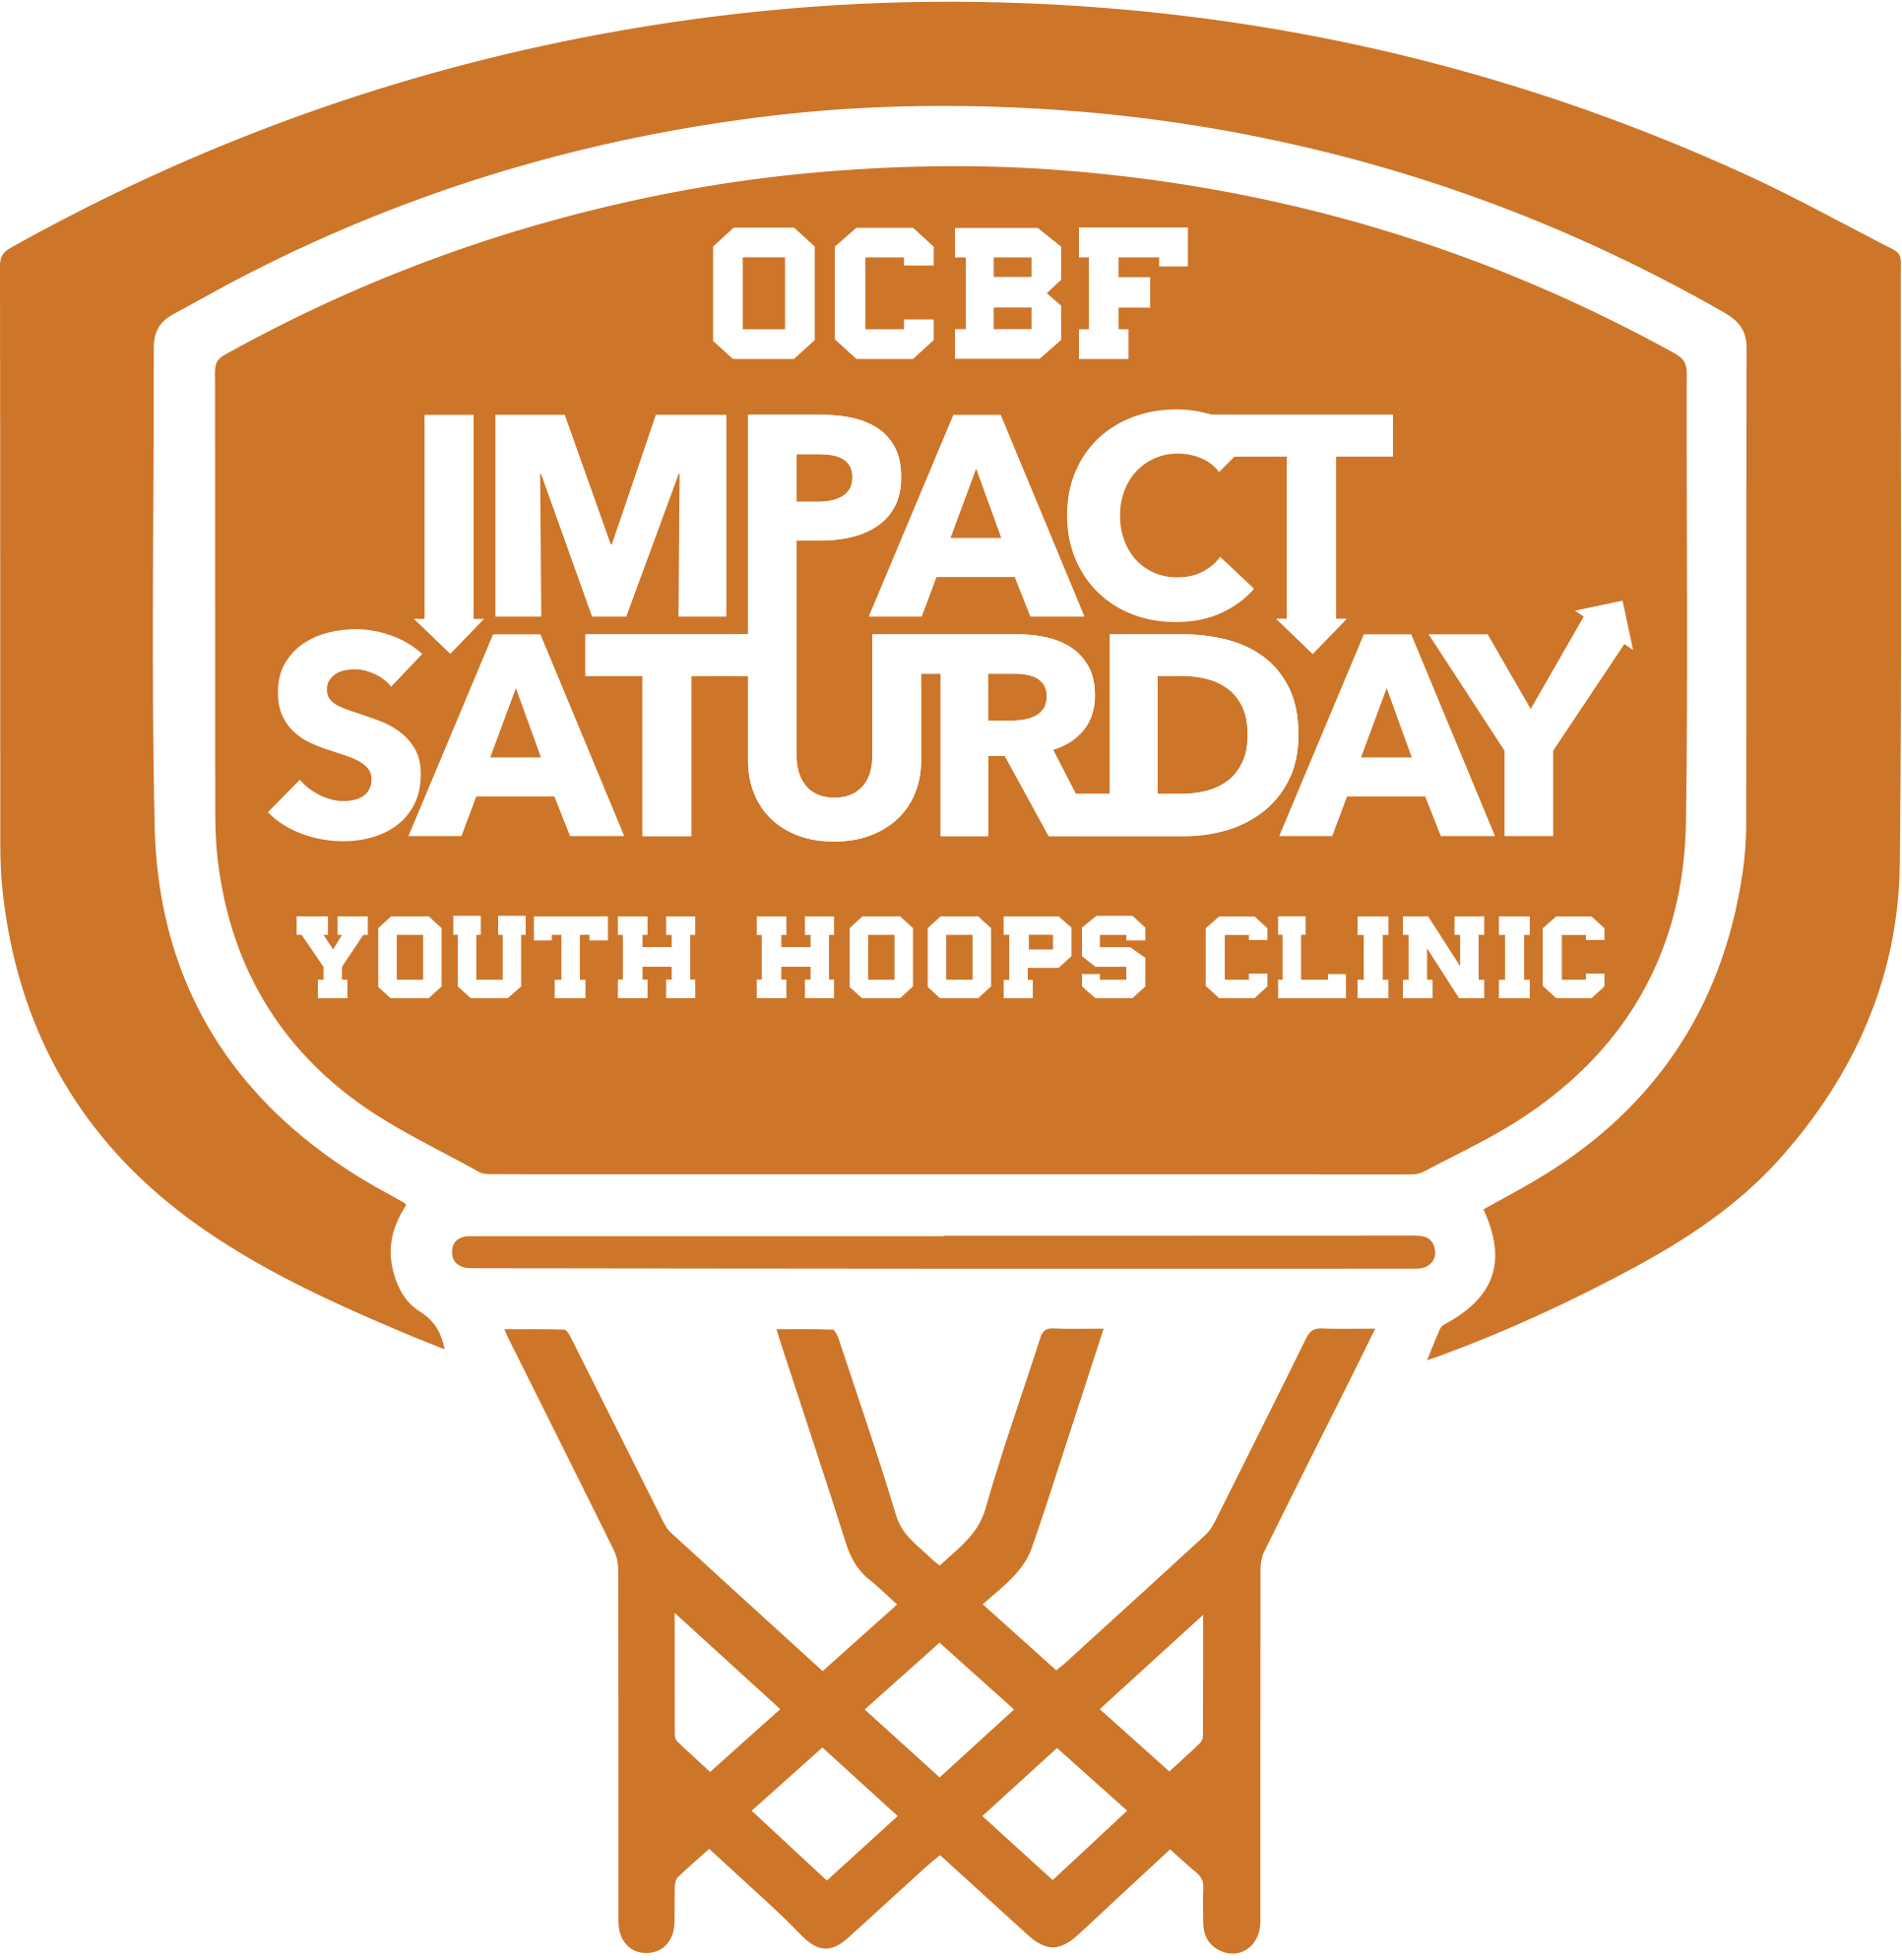 Impact Saturday - Youth Hoops Clinic